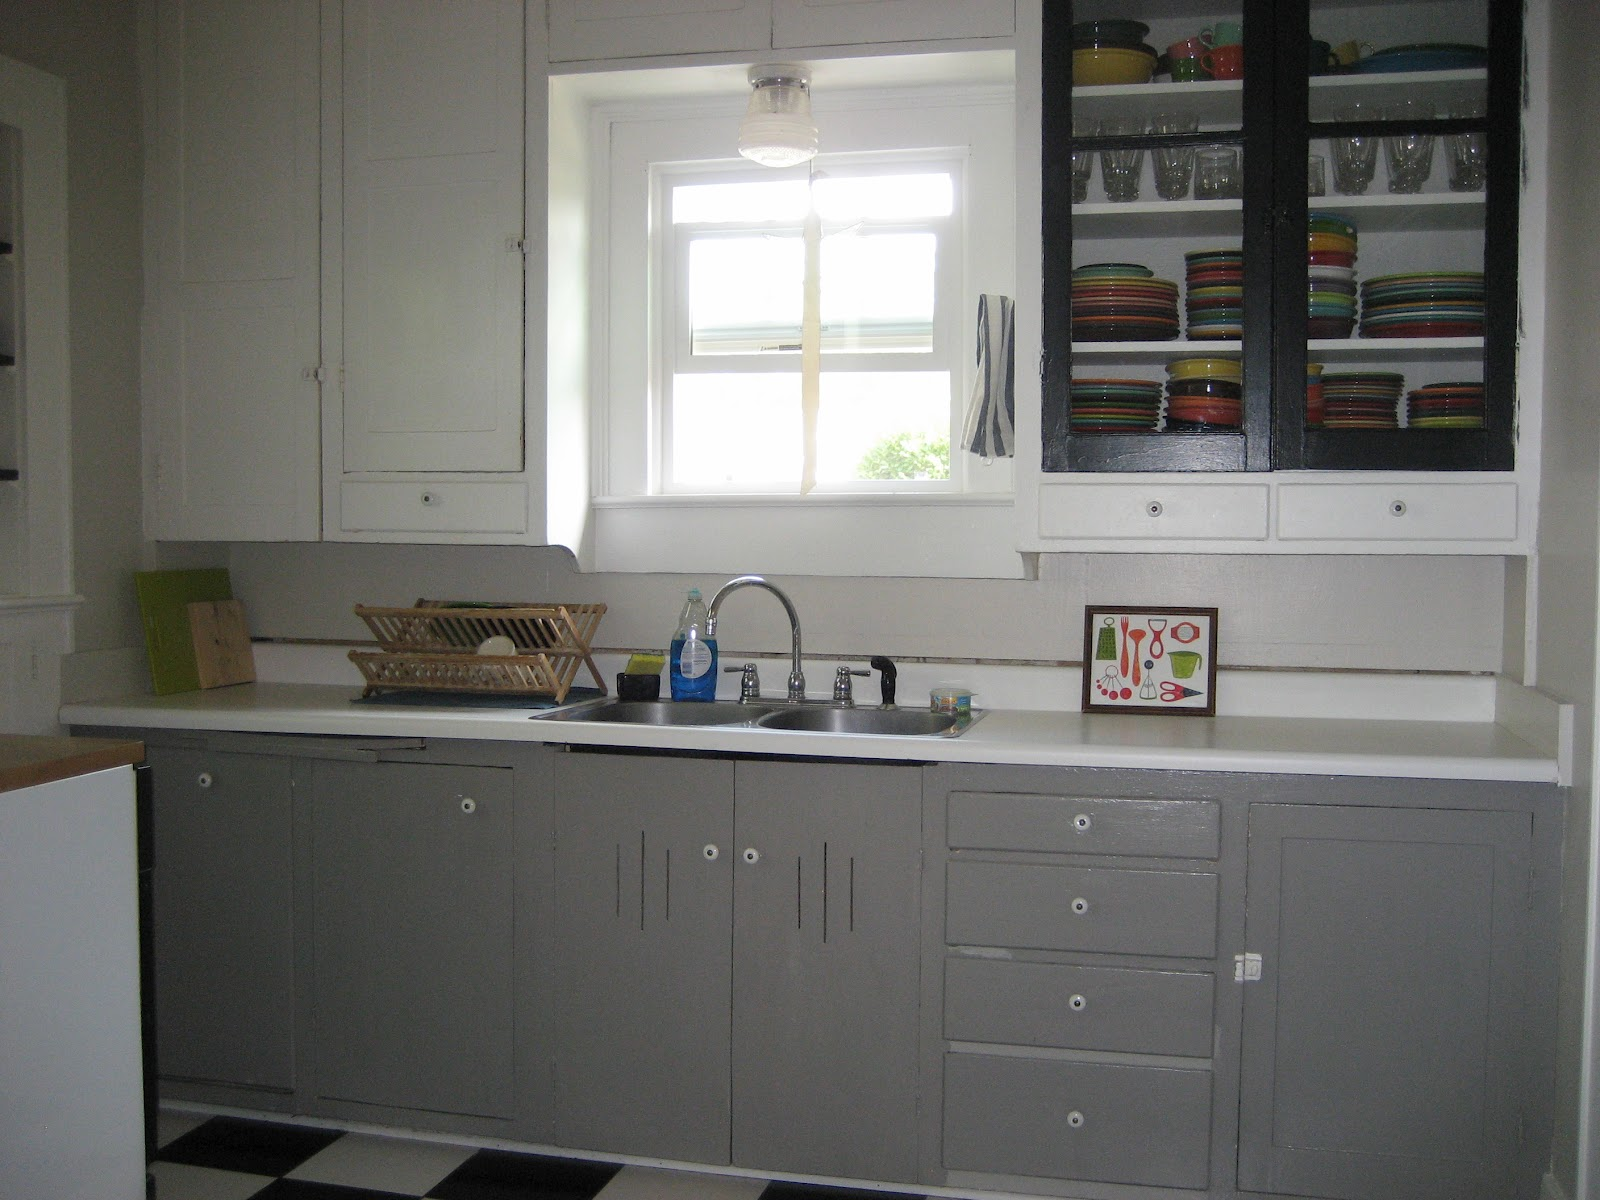 How To Clean The Kitchen Cabinets Cleaning Painted Kitchen Cabinets